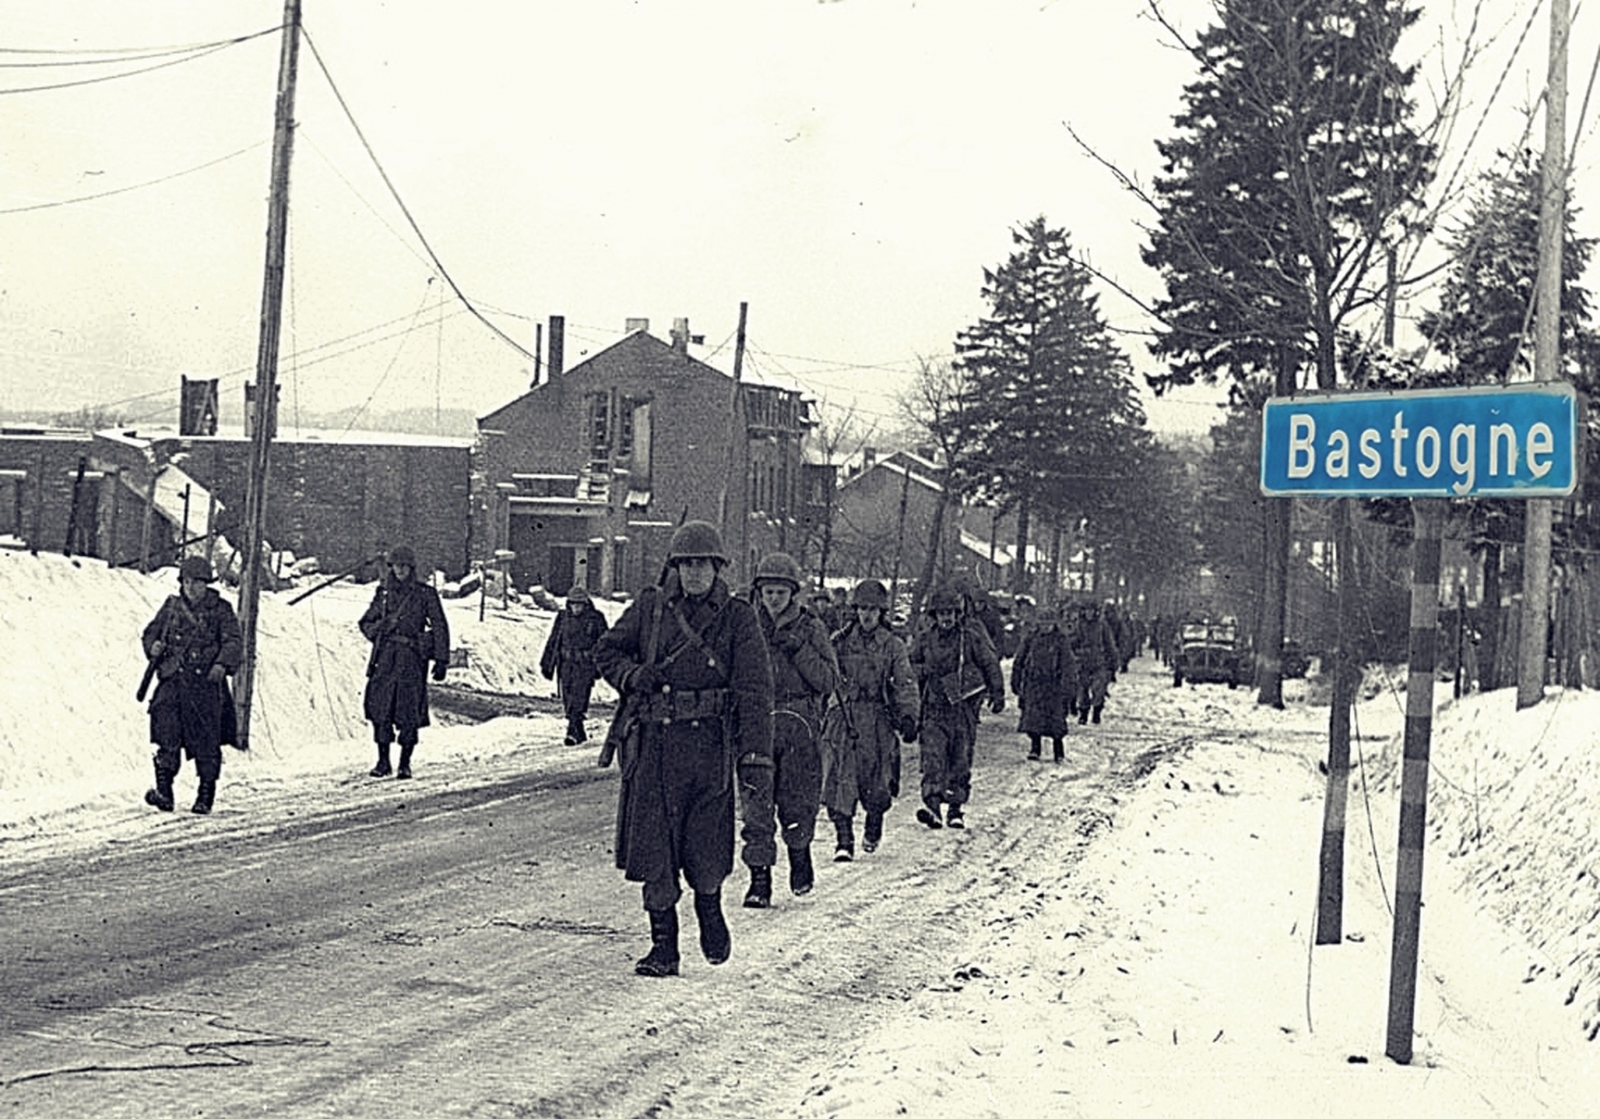 Bastogne Tours From Paris